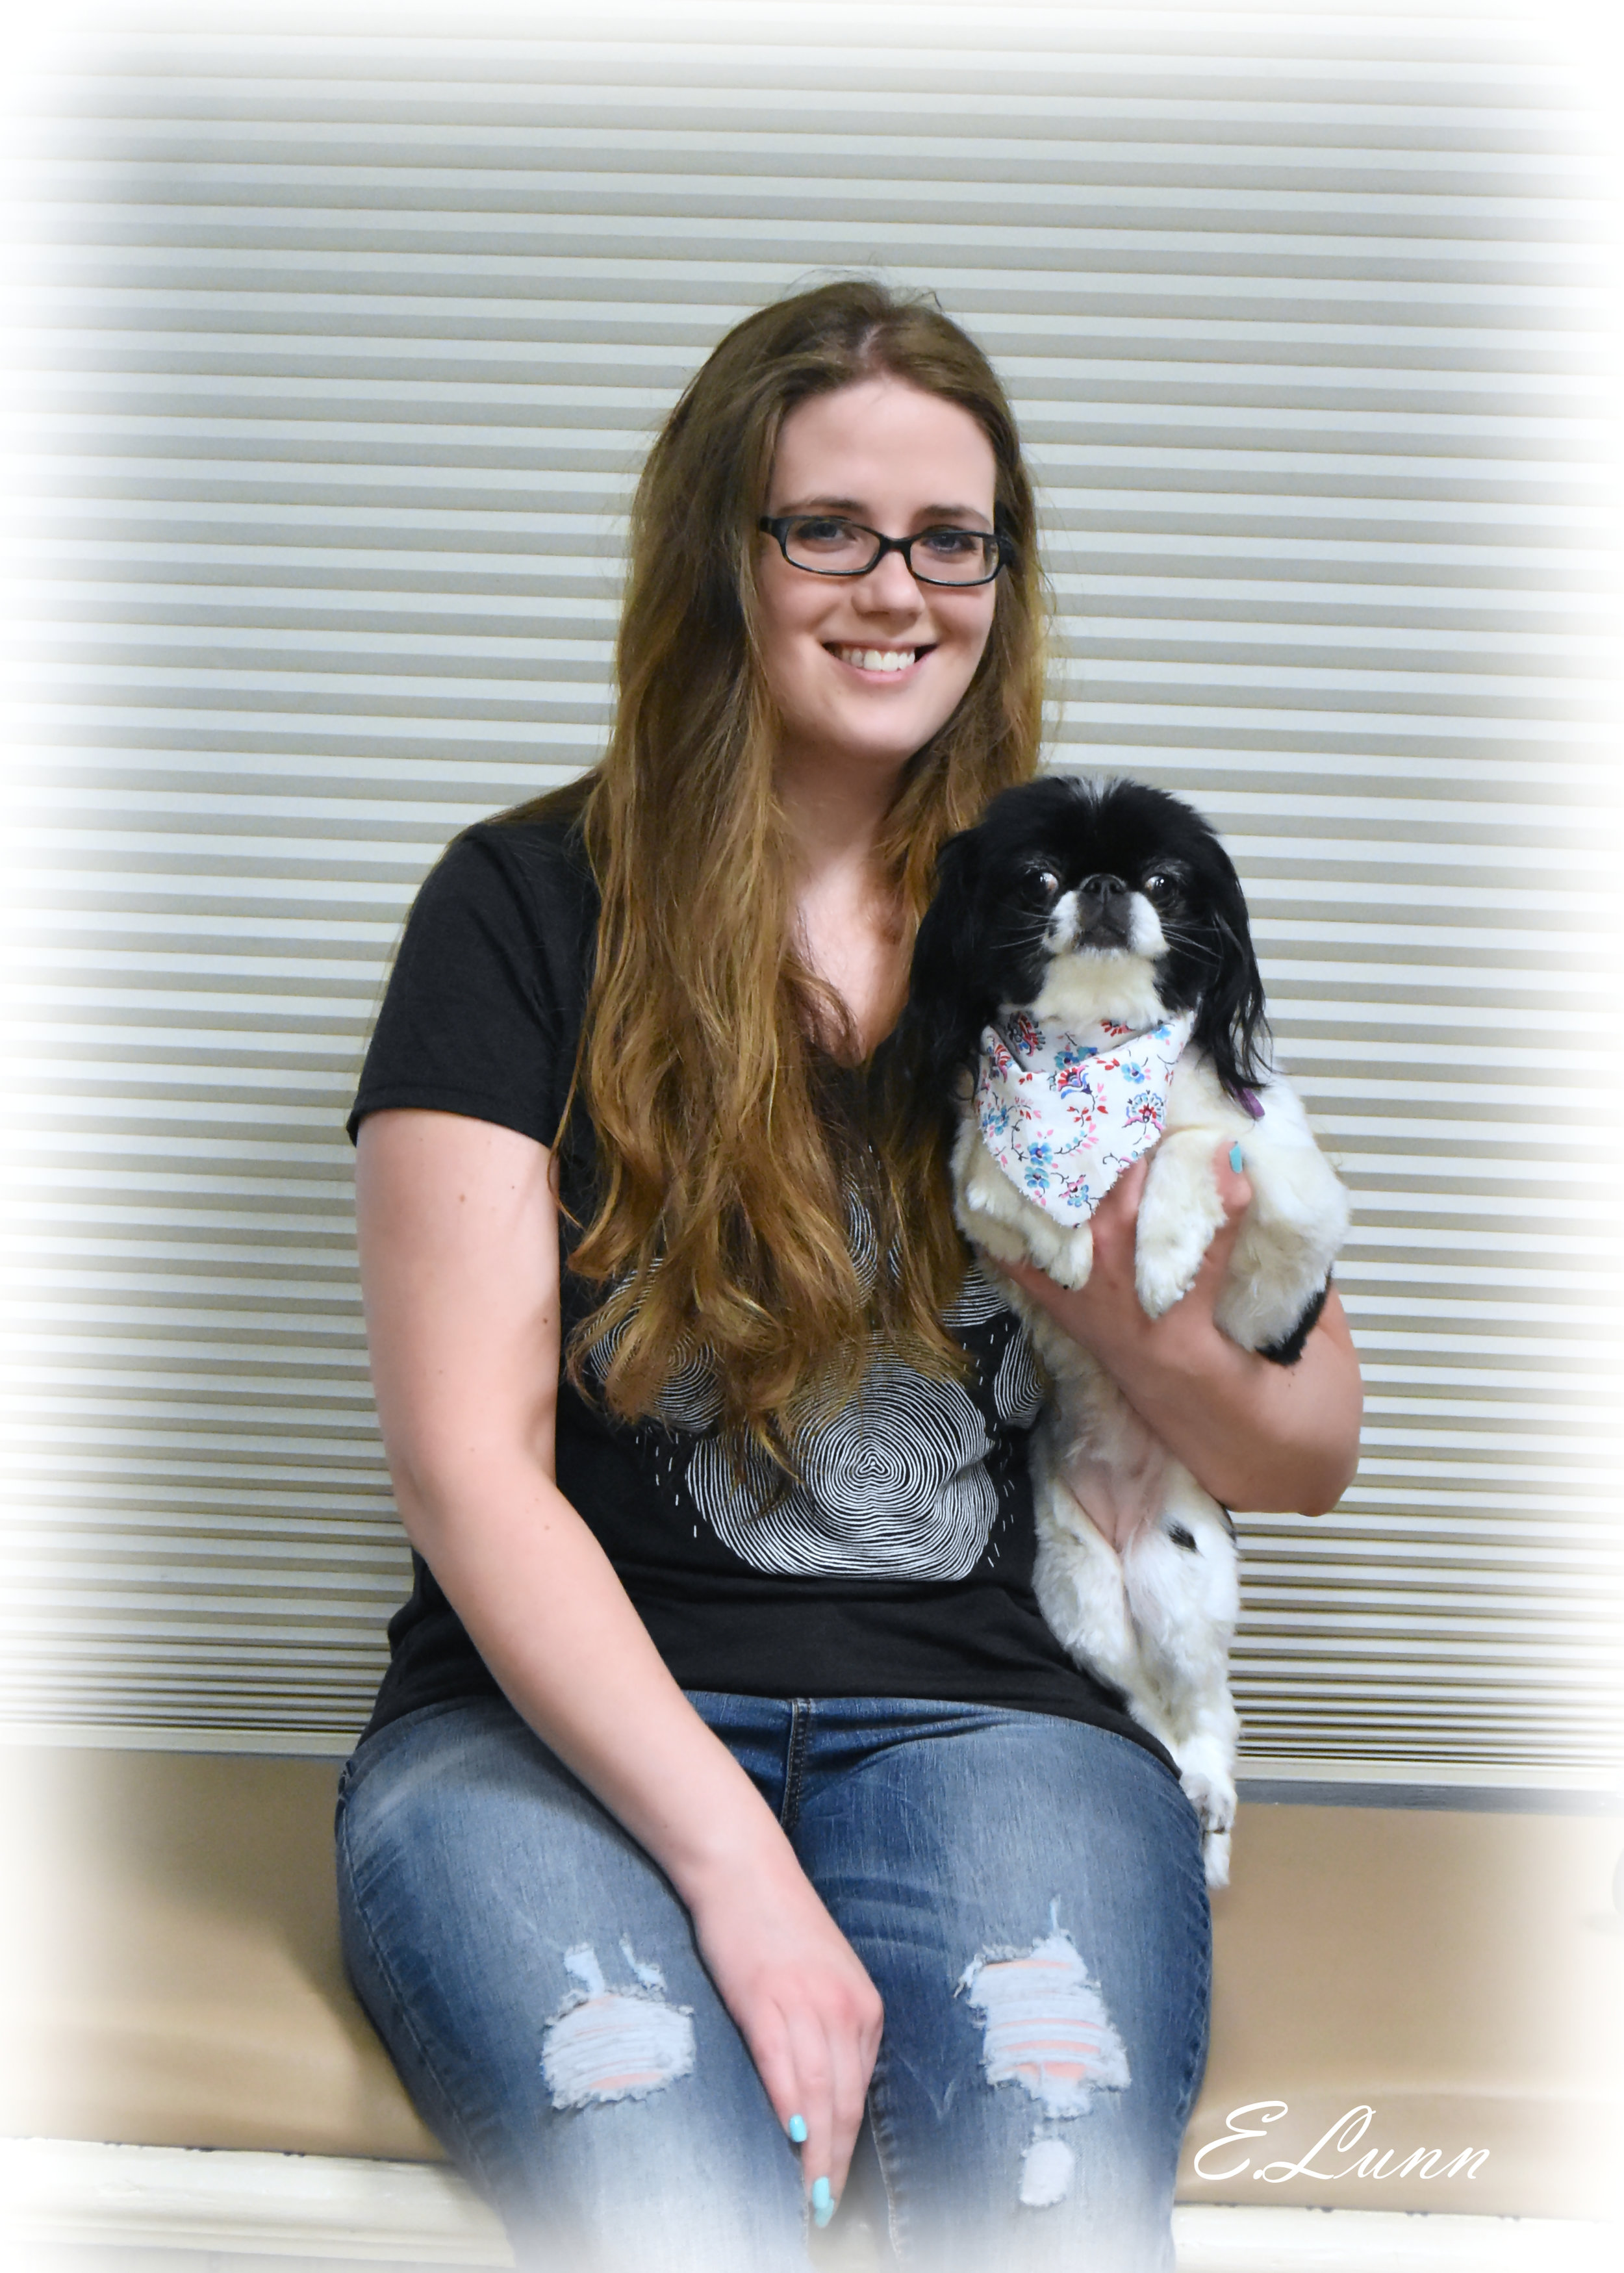 Jackie Clark - Groomer  Jackie joined the Pet Perfect team in 2016 and has worked as a bather and personal assistant to Garci. This year (2019) she has taken on training to become a full-time groomer. Jackie has also mastered the art of patience. Though she may be soft spoken, she knows how to keep challenging pets under control and has great ability when it comes to making anxious pets feel calm. She loves working with pets and is very excited to begin grooming full time in the near future.  In her free time, Jackie likes playing board games and video games. She also loves adding to her coffee mug collection, spending time with her fiancé and her Japanese Chin, stargazing, camping and going to the Renaissance Festival.